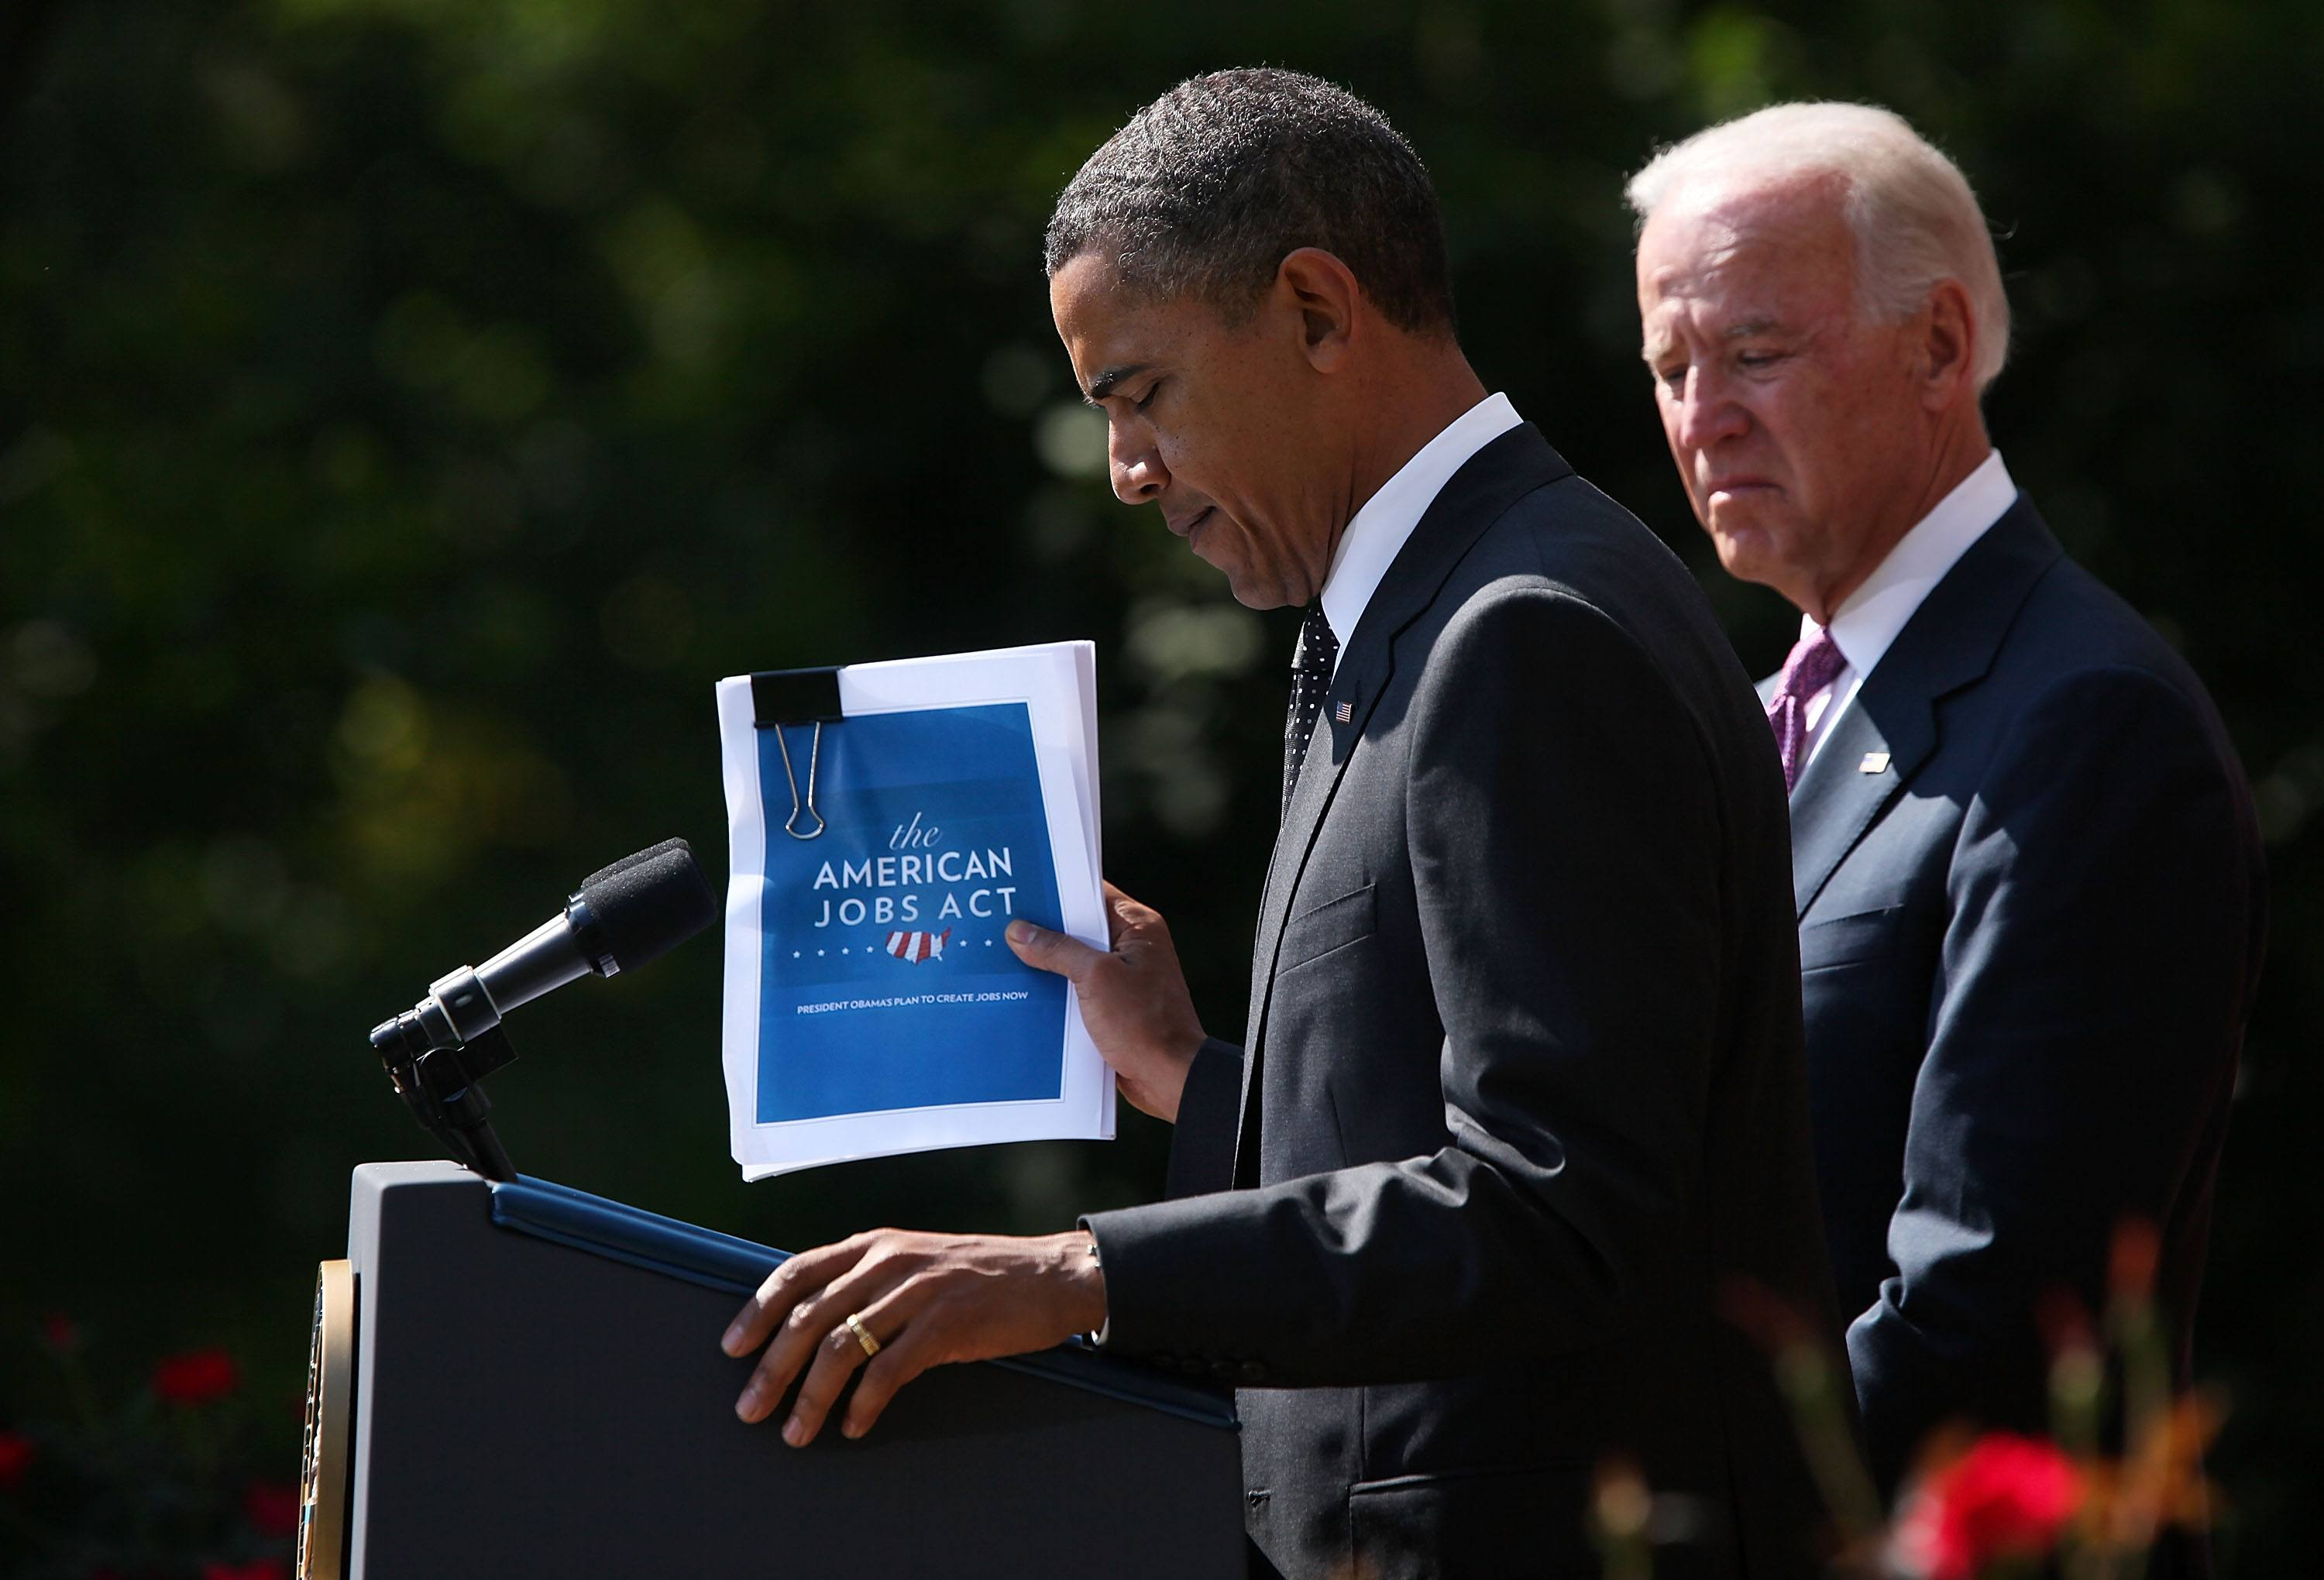 U.S. President Barack Obama holds up a copy of his $400 billion jobs plan he is sending to Congress as Vice President Joseph Biden stands next to him